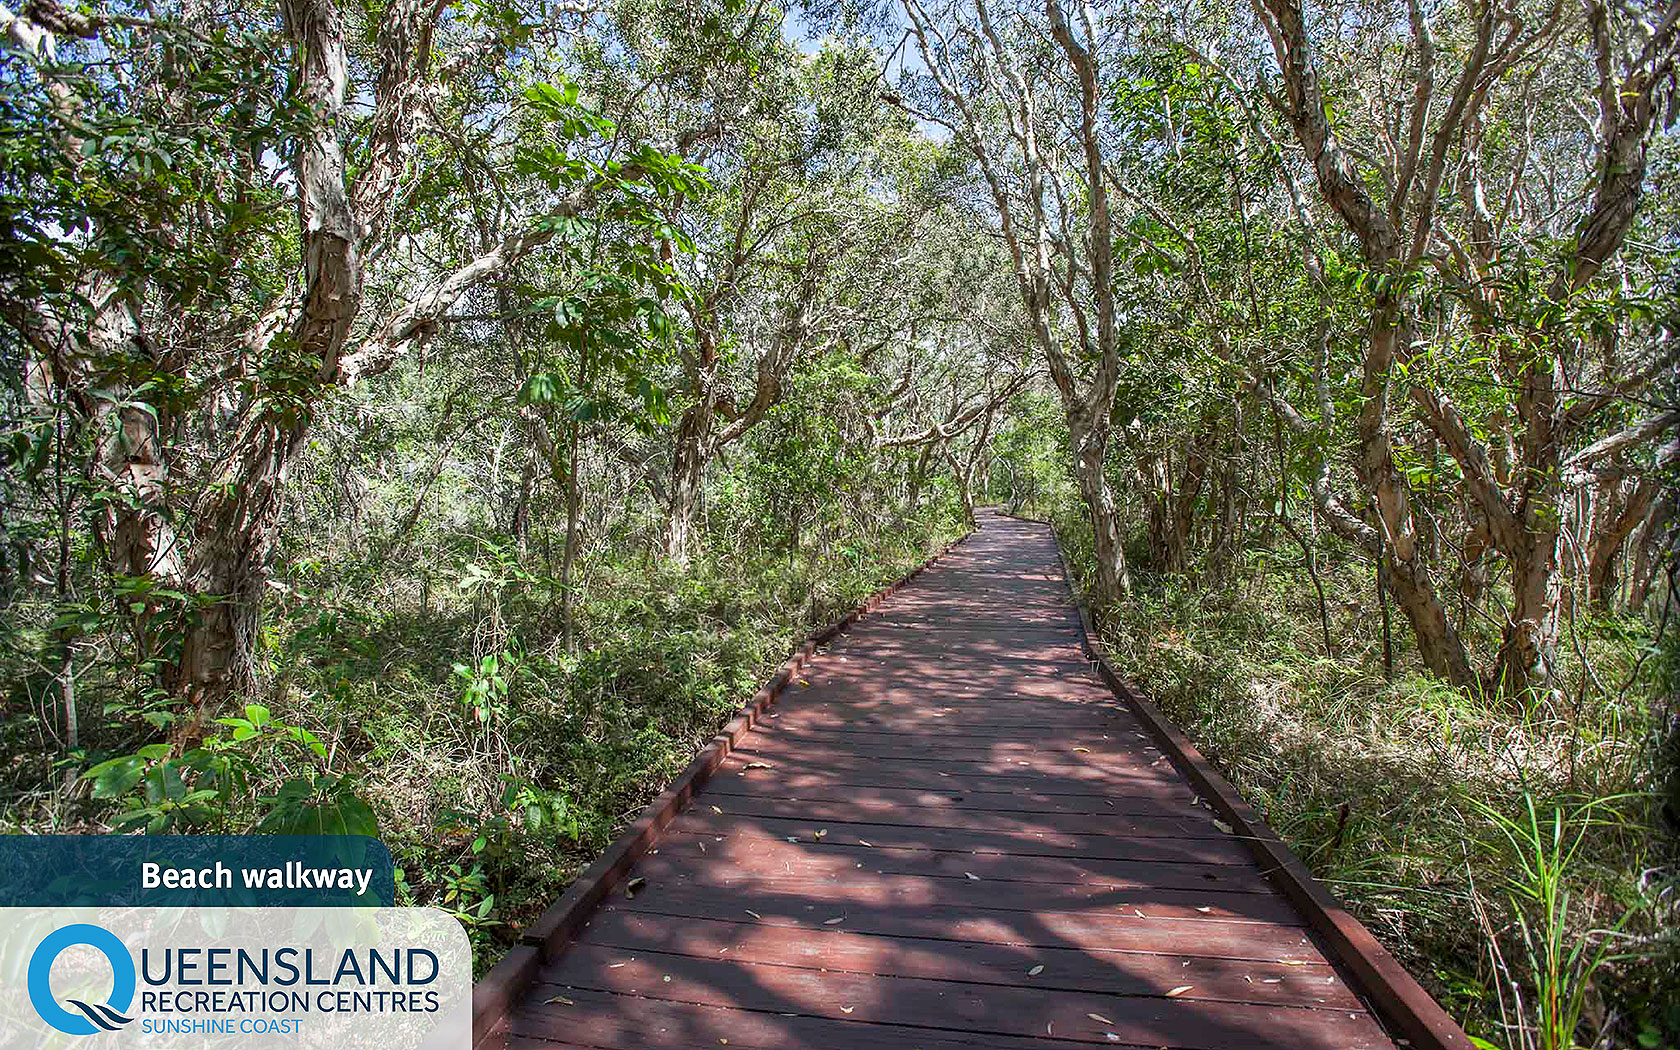 Wooden walkway through bushland to Currimundi Lake and Dicky Beach from the Sunshine Coast Recreation Centre